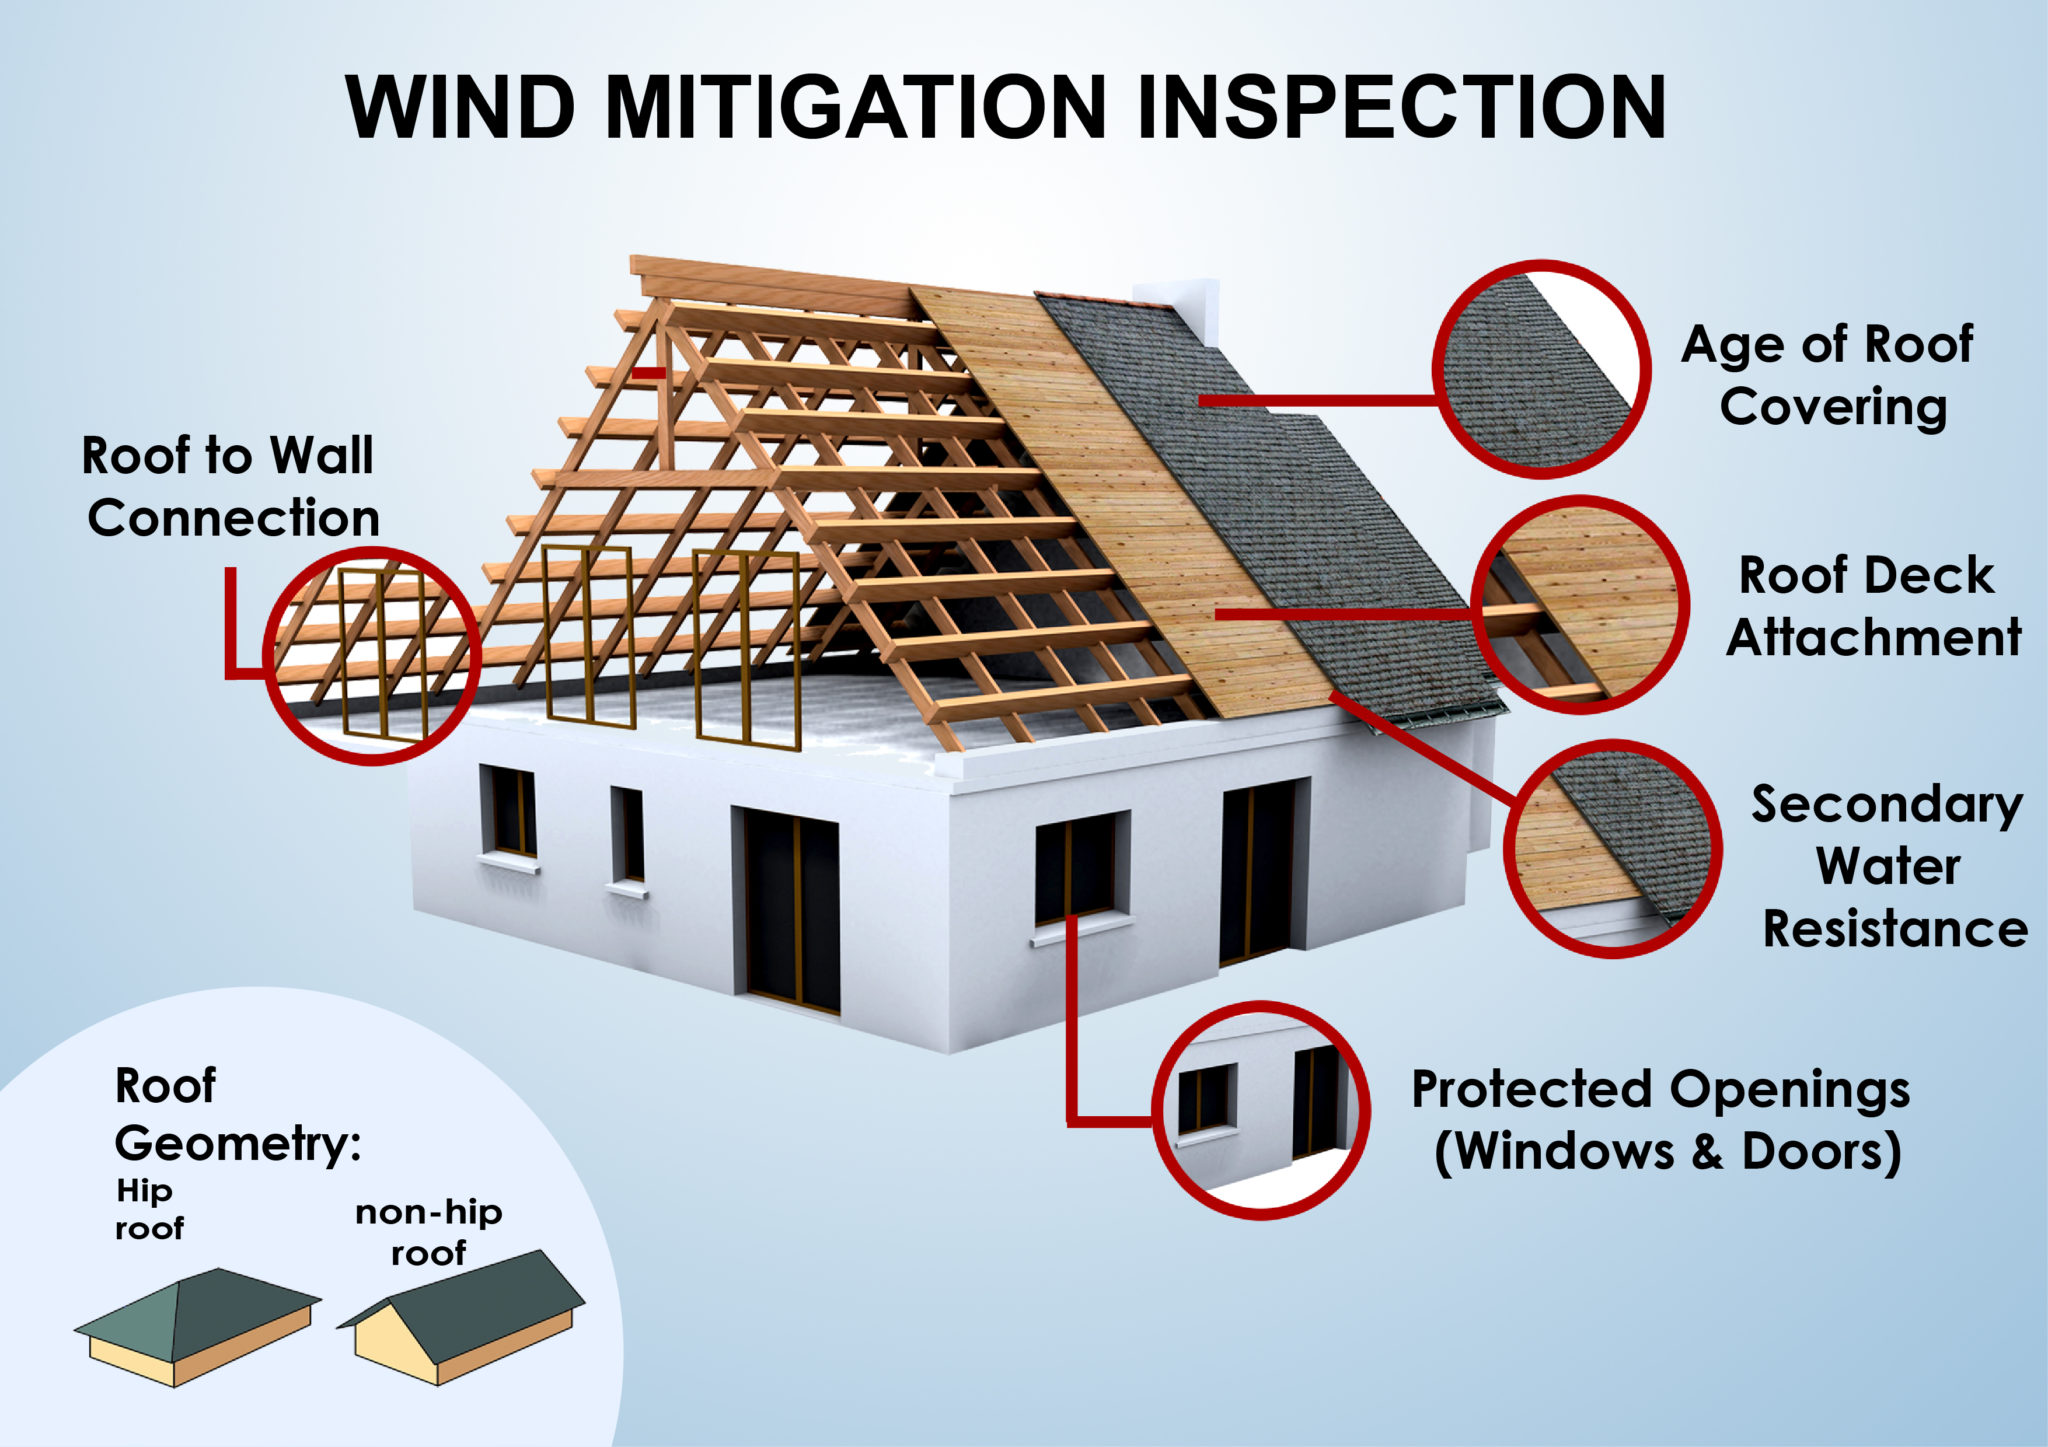 HOW TO SAVE MONEY WITH A WIND MITIGATION INSPECTION: WHAT IS WIND MITIGATION?